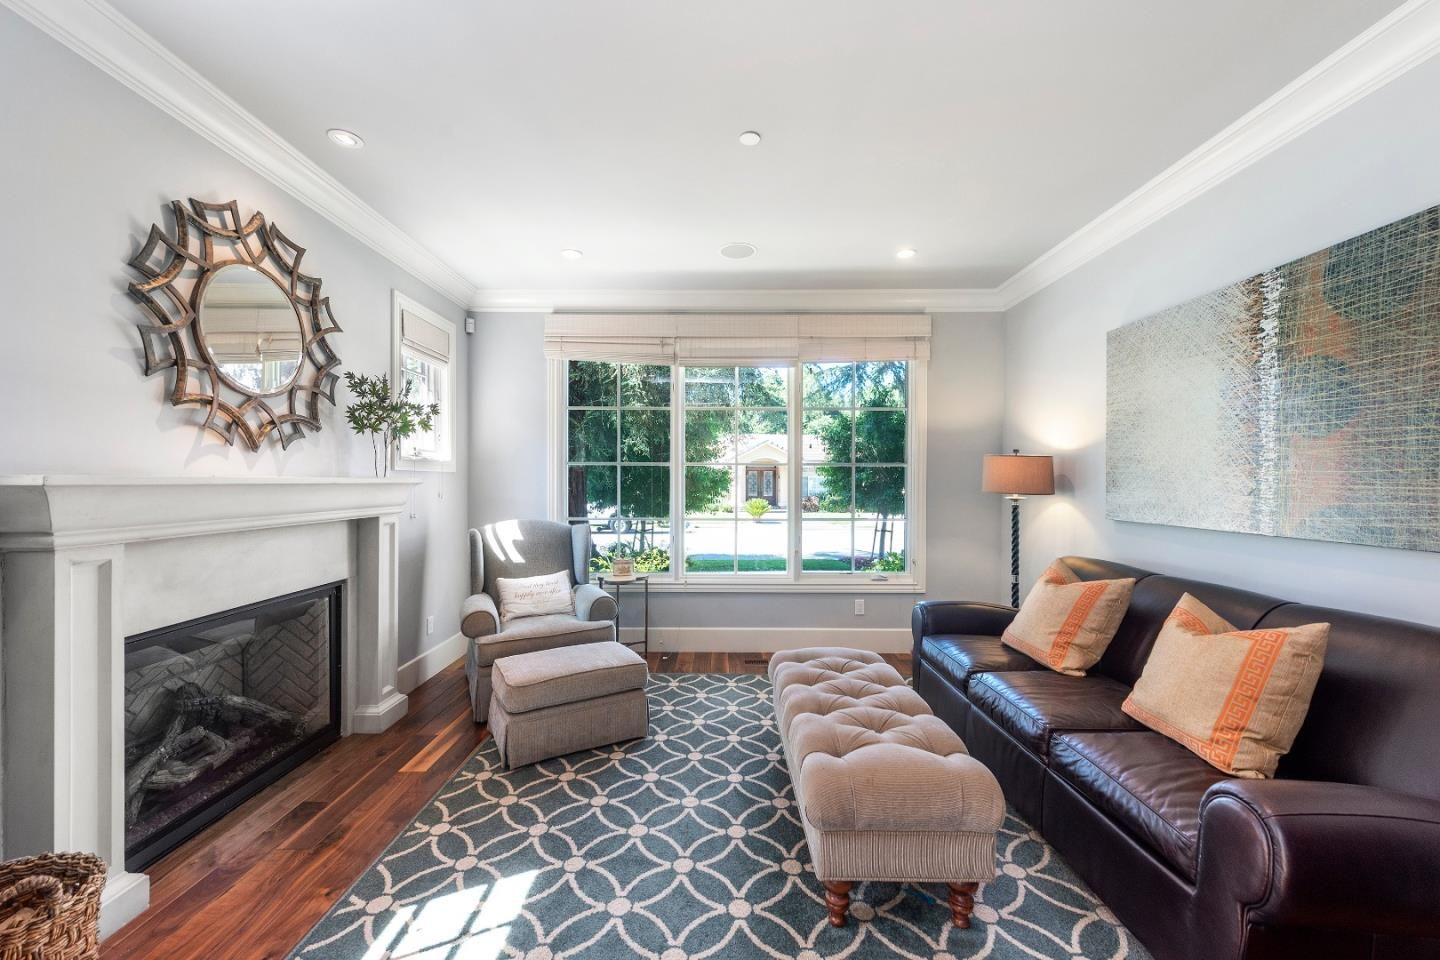 1724 Peregrino Way San Jose, CA | $3,598,000 5 Beds | 5.5 Baths | 4,401  SQFT  For questions or for private showing contact:   Carolyn Botts  Compass P: (650) 207-0246 E: carolynb@apr.com   #homeforsaleinSanJose #homesforsale #SanJosehomes #SanJose #houseforsale #forsale #realtor #compass  #realestate #luxuryrealestate #realestateagent #dreamhome #milliondollarhomes #ForSale #realestatemarket #homes #findhome #beautifulhome #firsttimehomebuyers #homebuyers  #housingmarket #siliconvalleyhomes #si